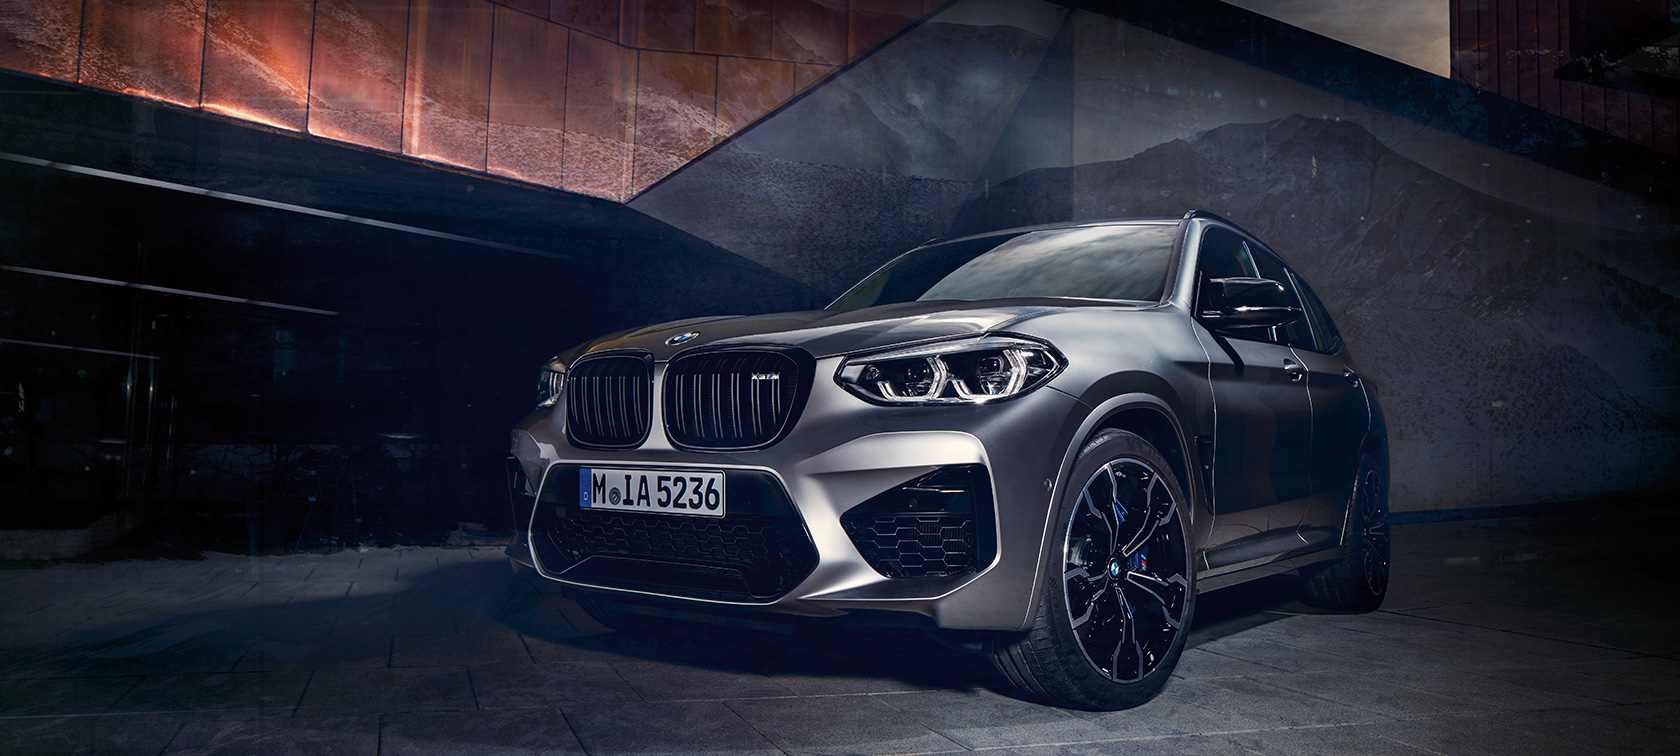 Bmw X3 M Automobile Bmw X3 M Competition Bmw X3 M Bmw X3 M40i Und Bmw X3 M40d Bmw At